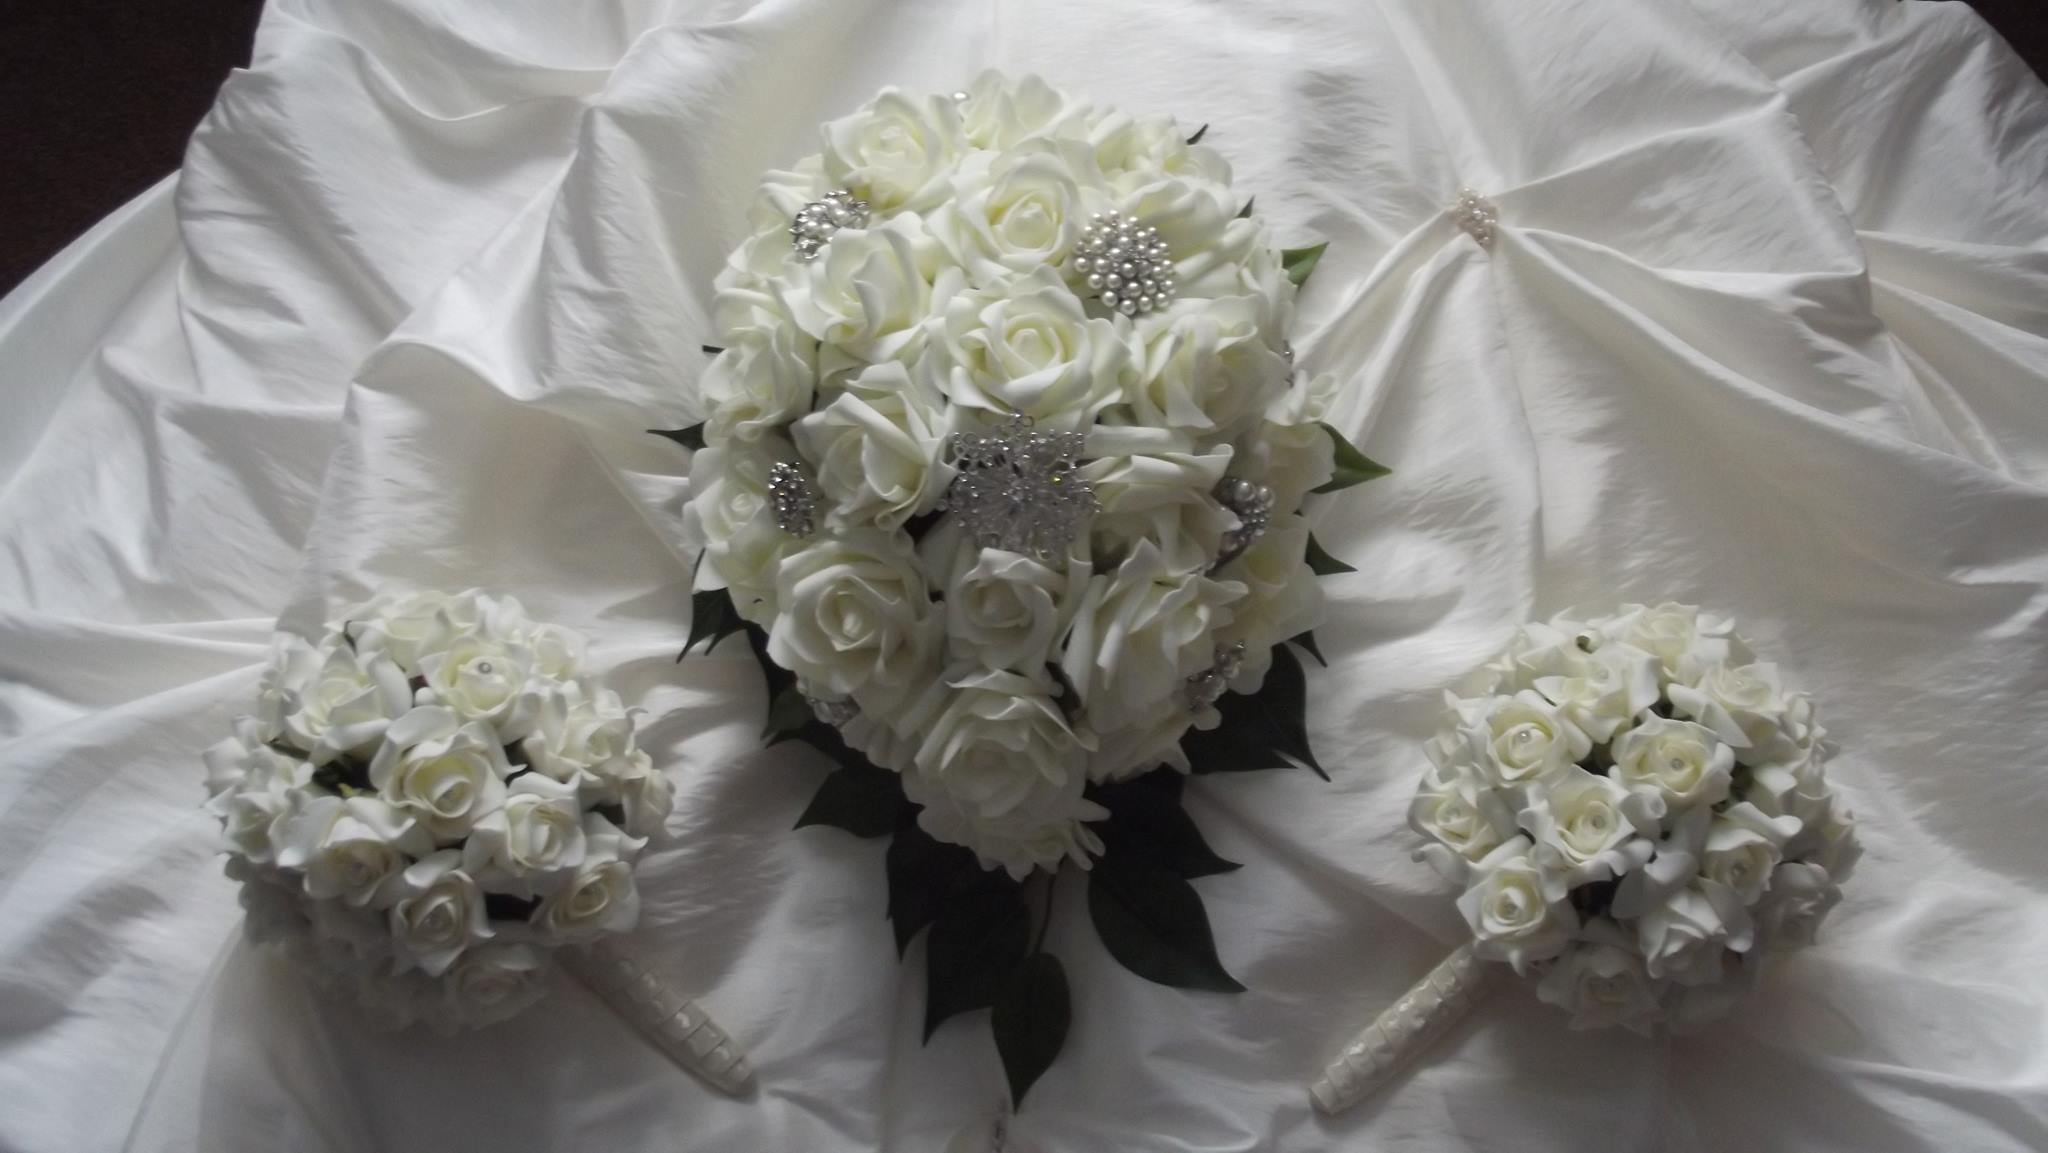 More than perfect wedding flowers for you